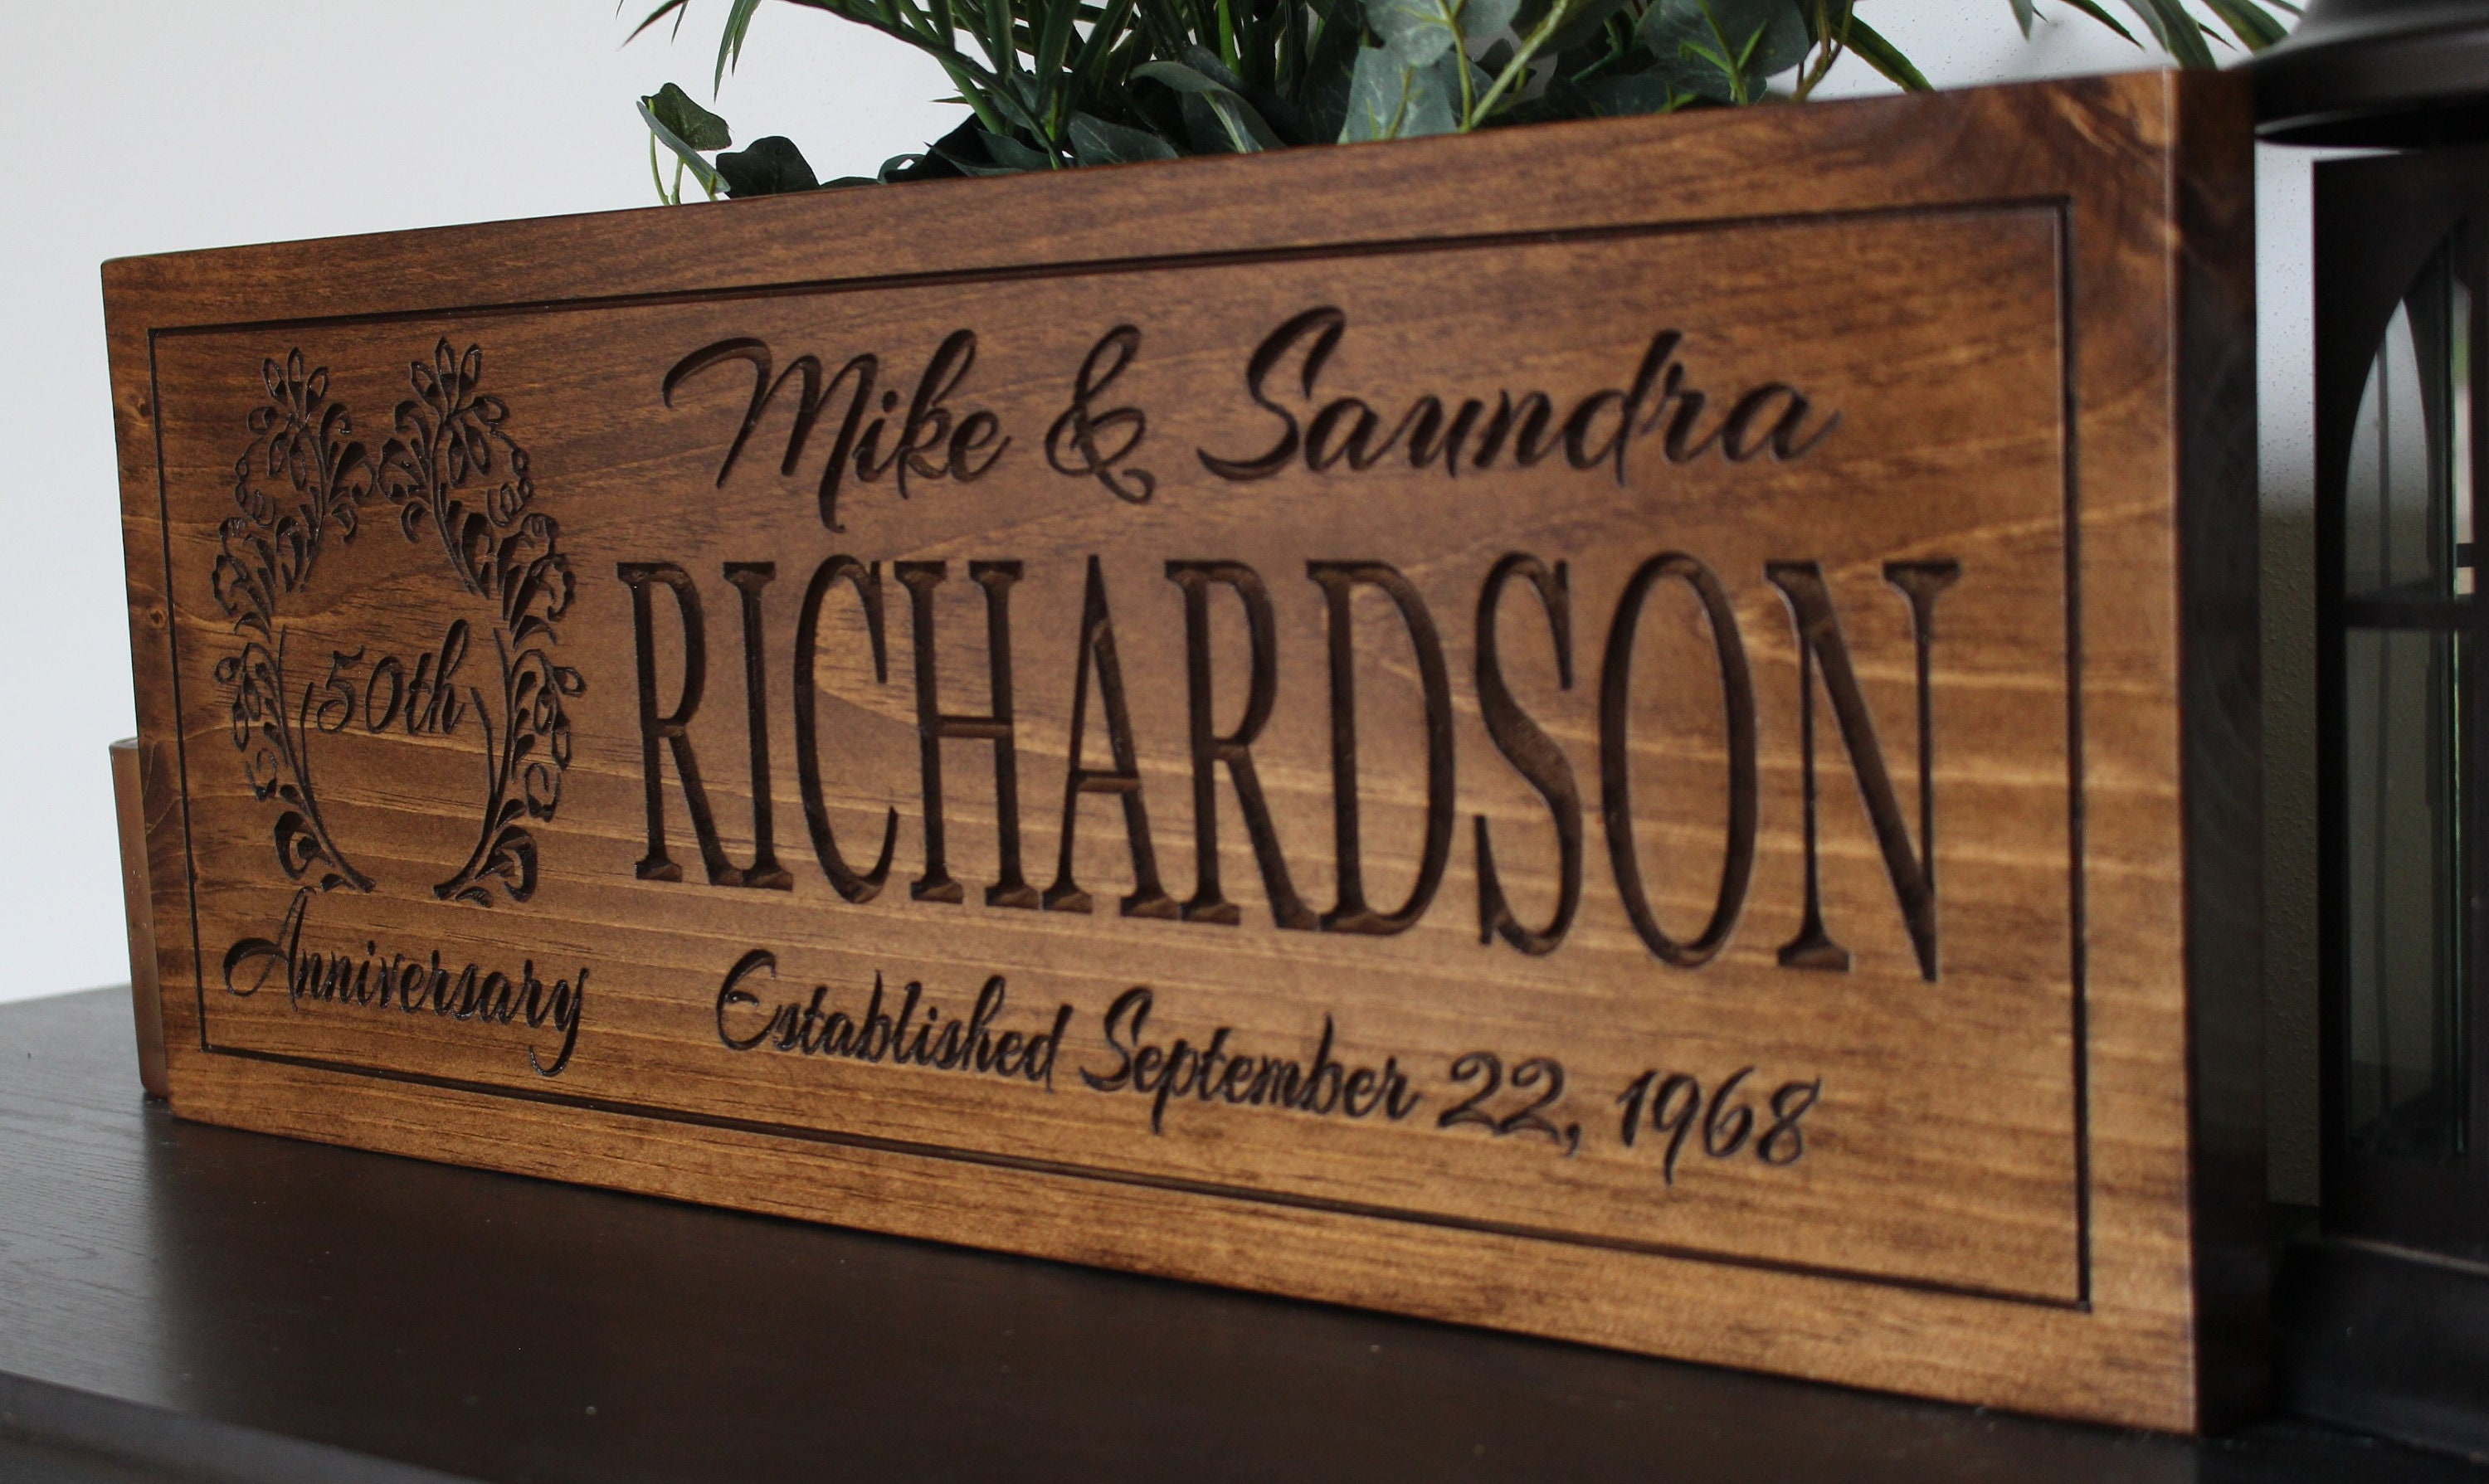 Fiftieth Wedding Anniversary Gifts: Personalized 50th Anniversary Gift For Parents-50th